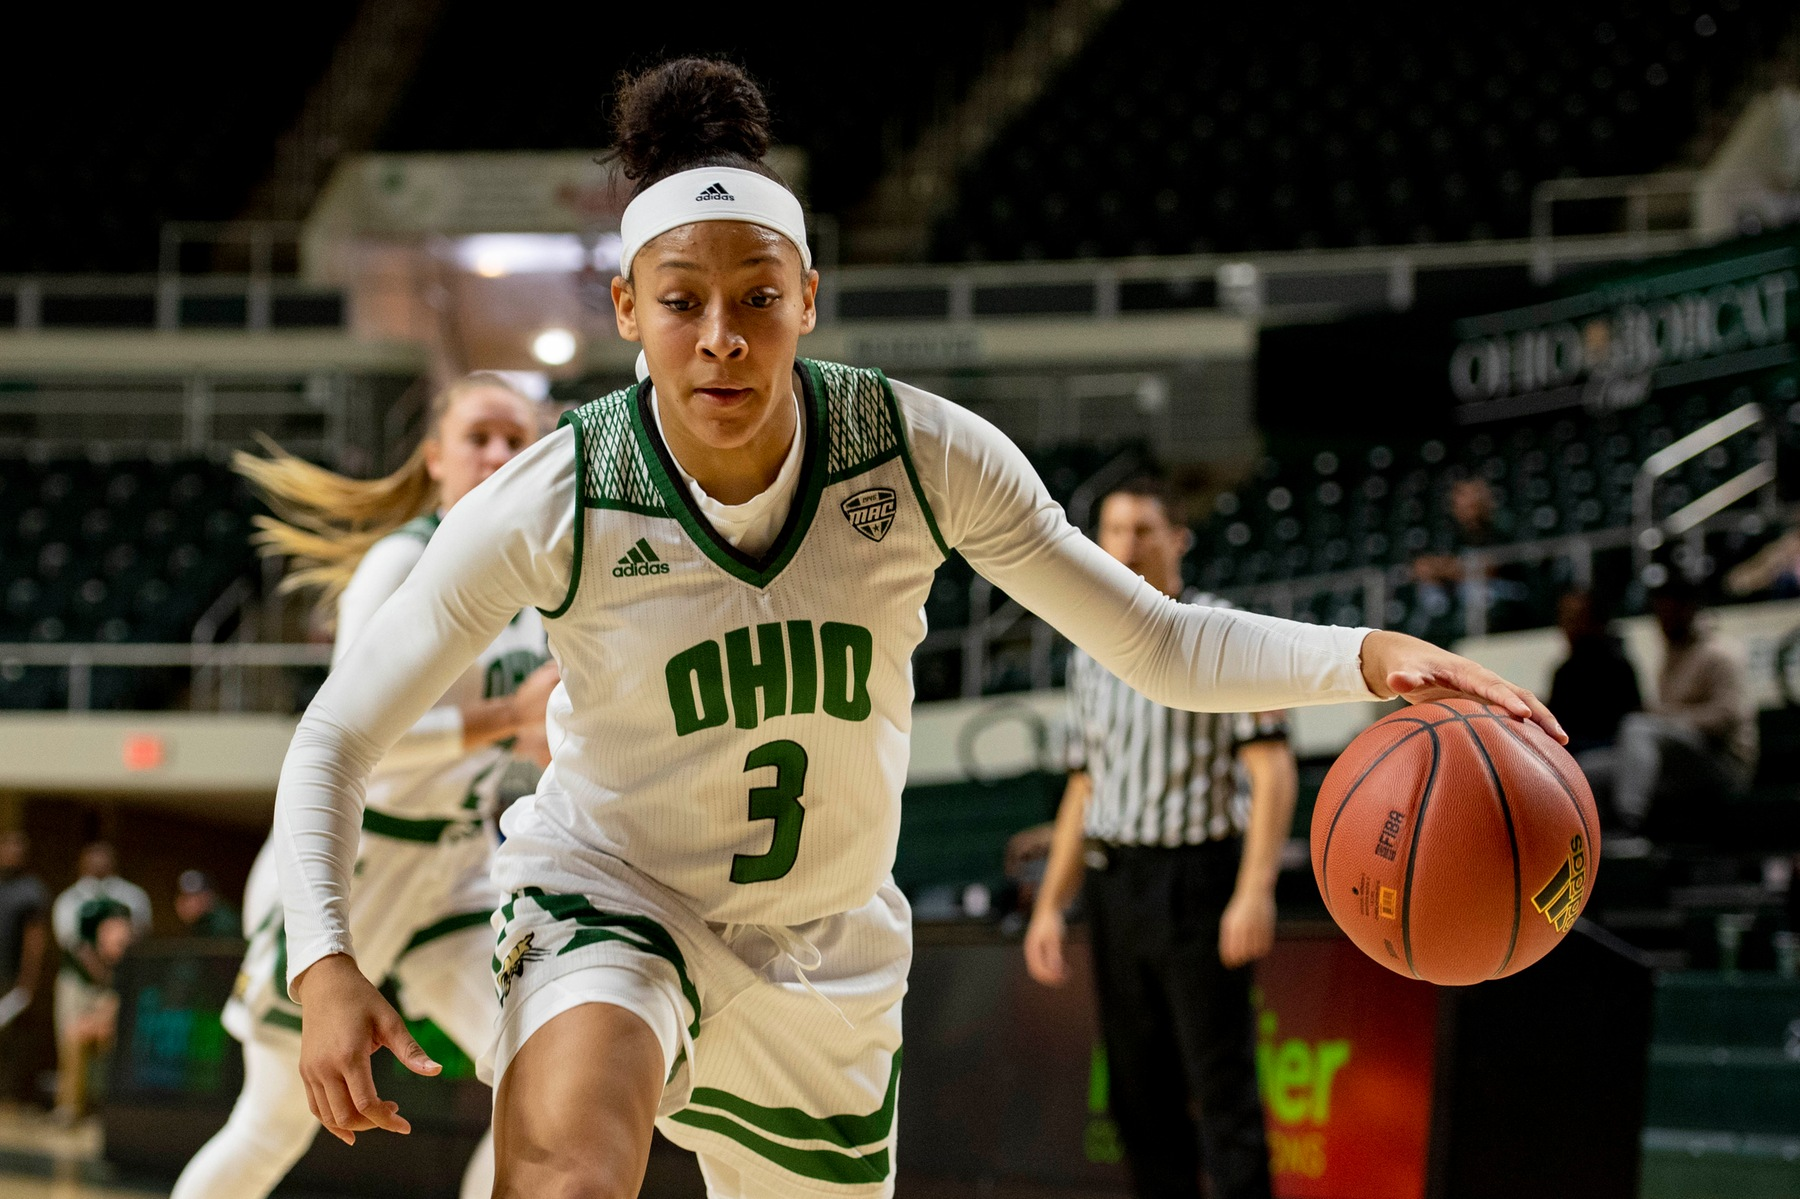 Ohio Women's Basketball Improves to 10-0 With 109-58 Win Over Richmond